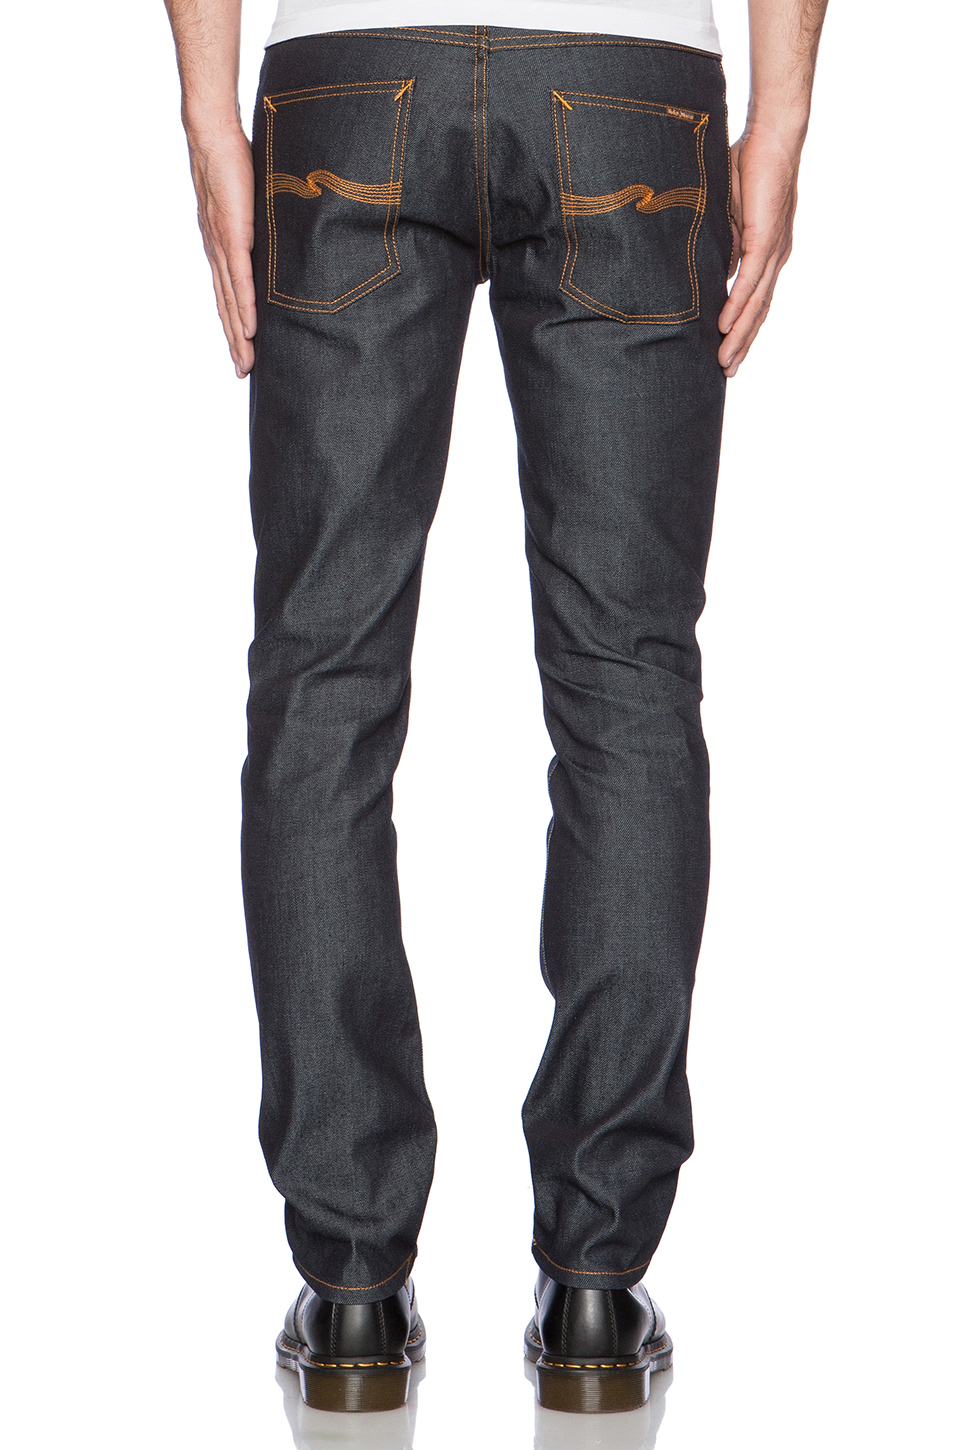 Nudie Jeans Grim Tim in Dry Dirt Organic